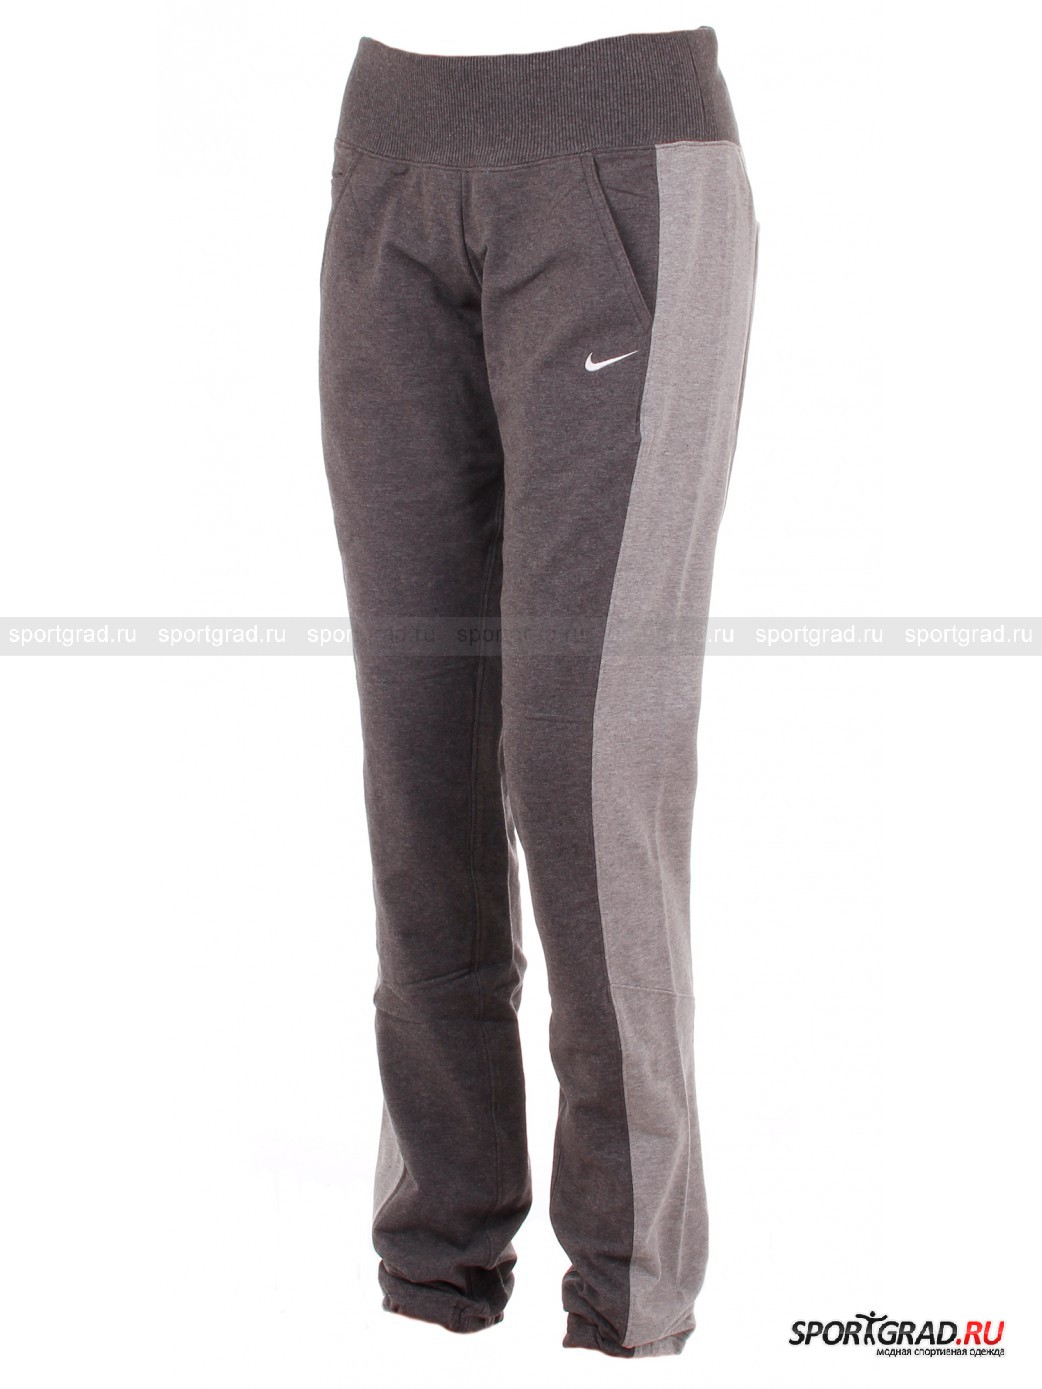 Брюки жен LOCK-IT KNIT PANT NIKE